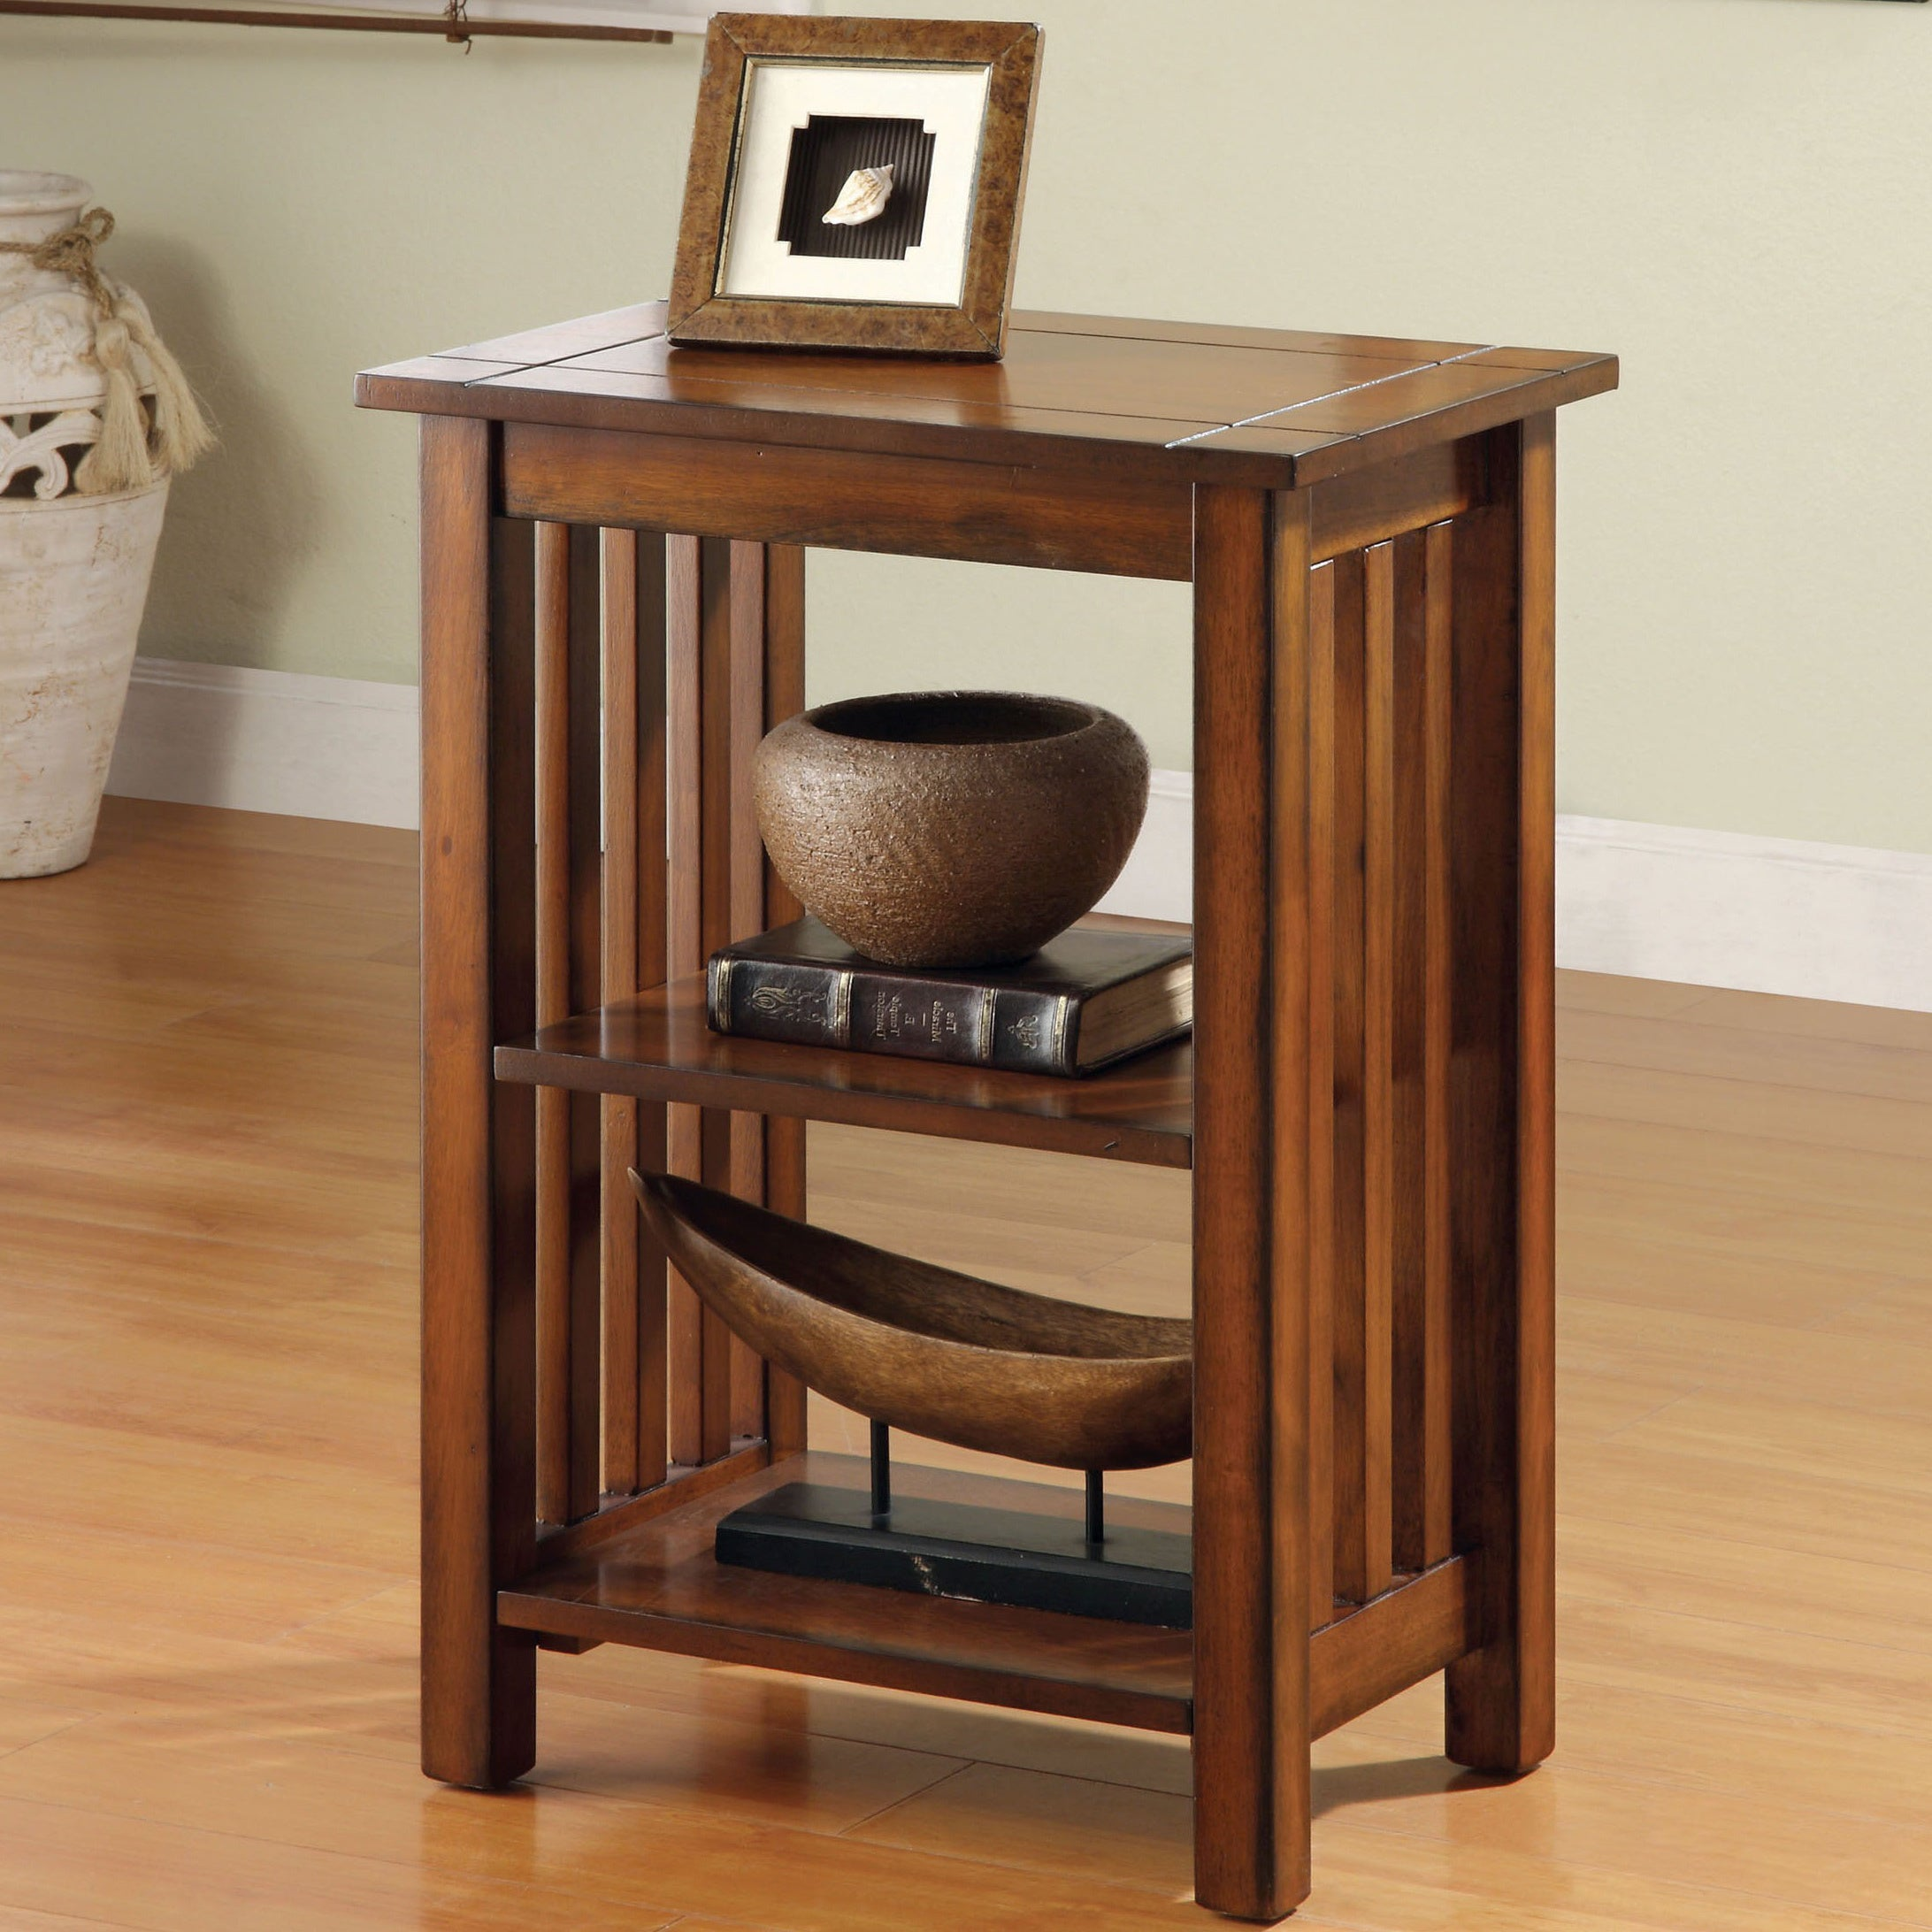 Shop furniture of america valentin antique oak mission style end table on sale free shipping today overstock com 8880621